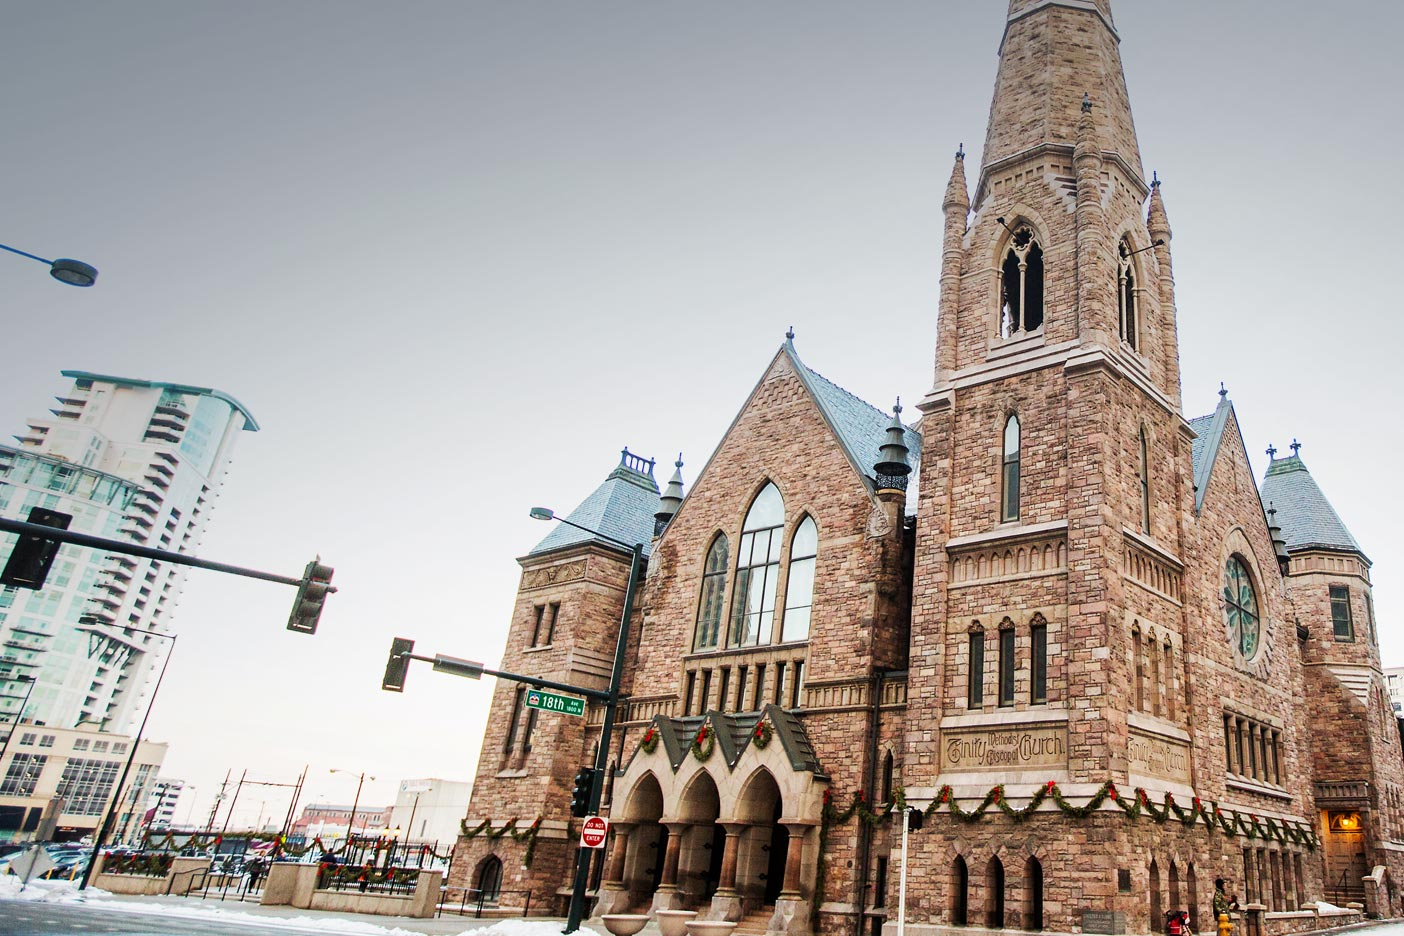 Trinity United Methodist Church located at 1820 Broadway in Denver.